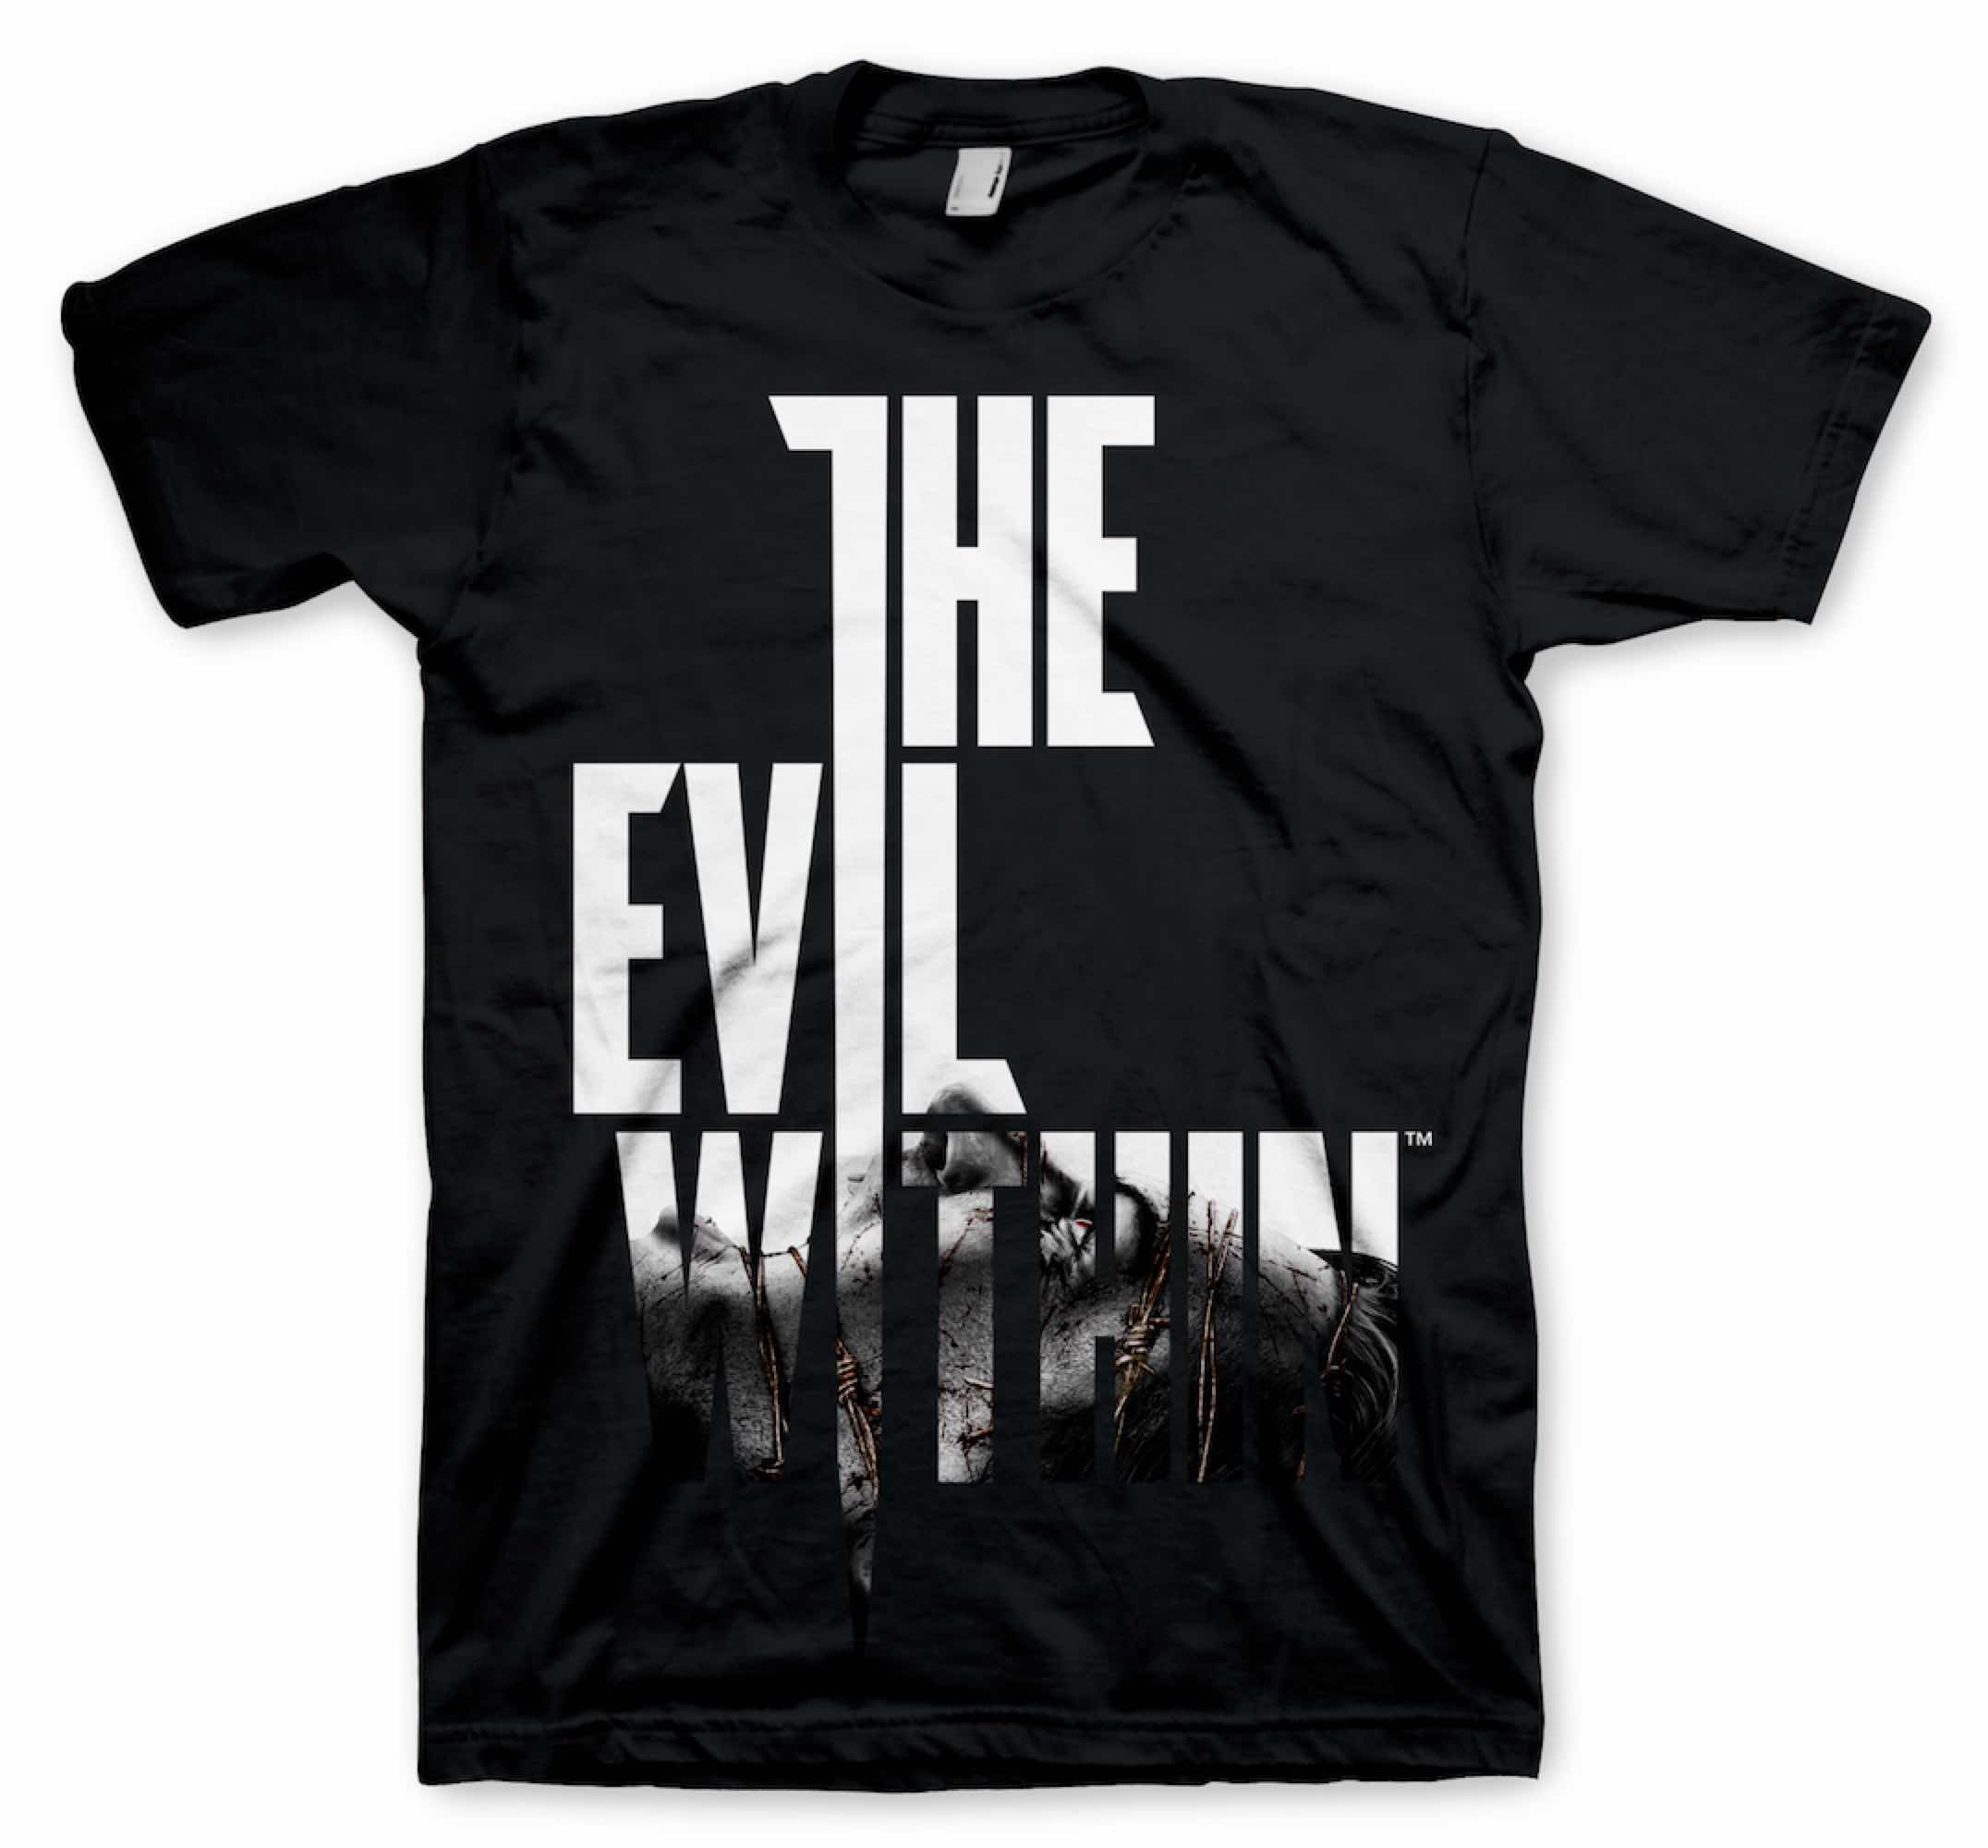 WIRED LOGO CAMISETA NEGRA CHICO TALLA M THE EVIL WITHIN